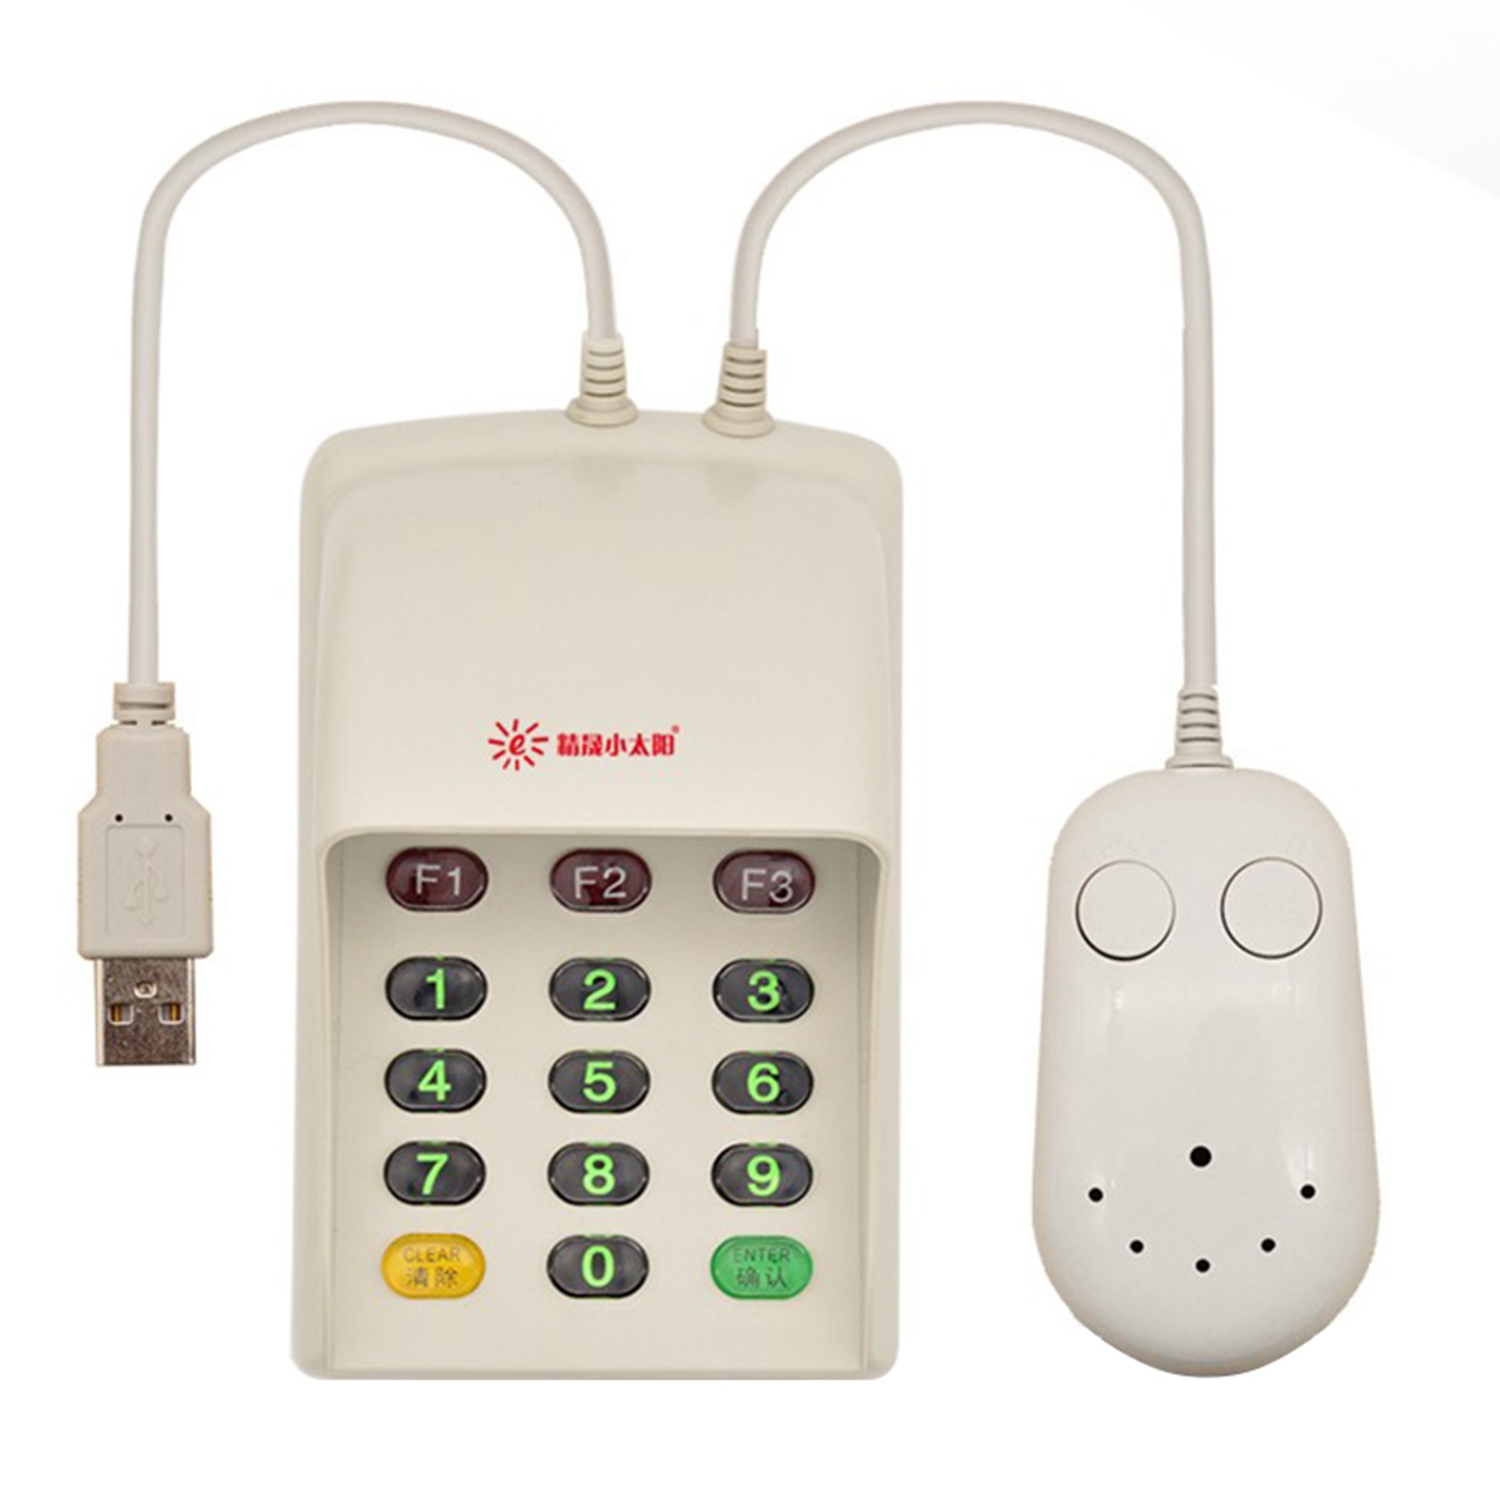 Sunrose K19E Voice Broadcast Security Check Password Keyboard USB Digital Keypad Securities Bank to Collect Money Keyboard